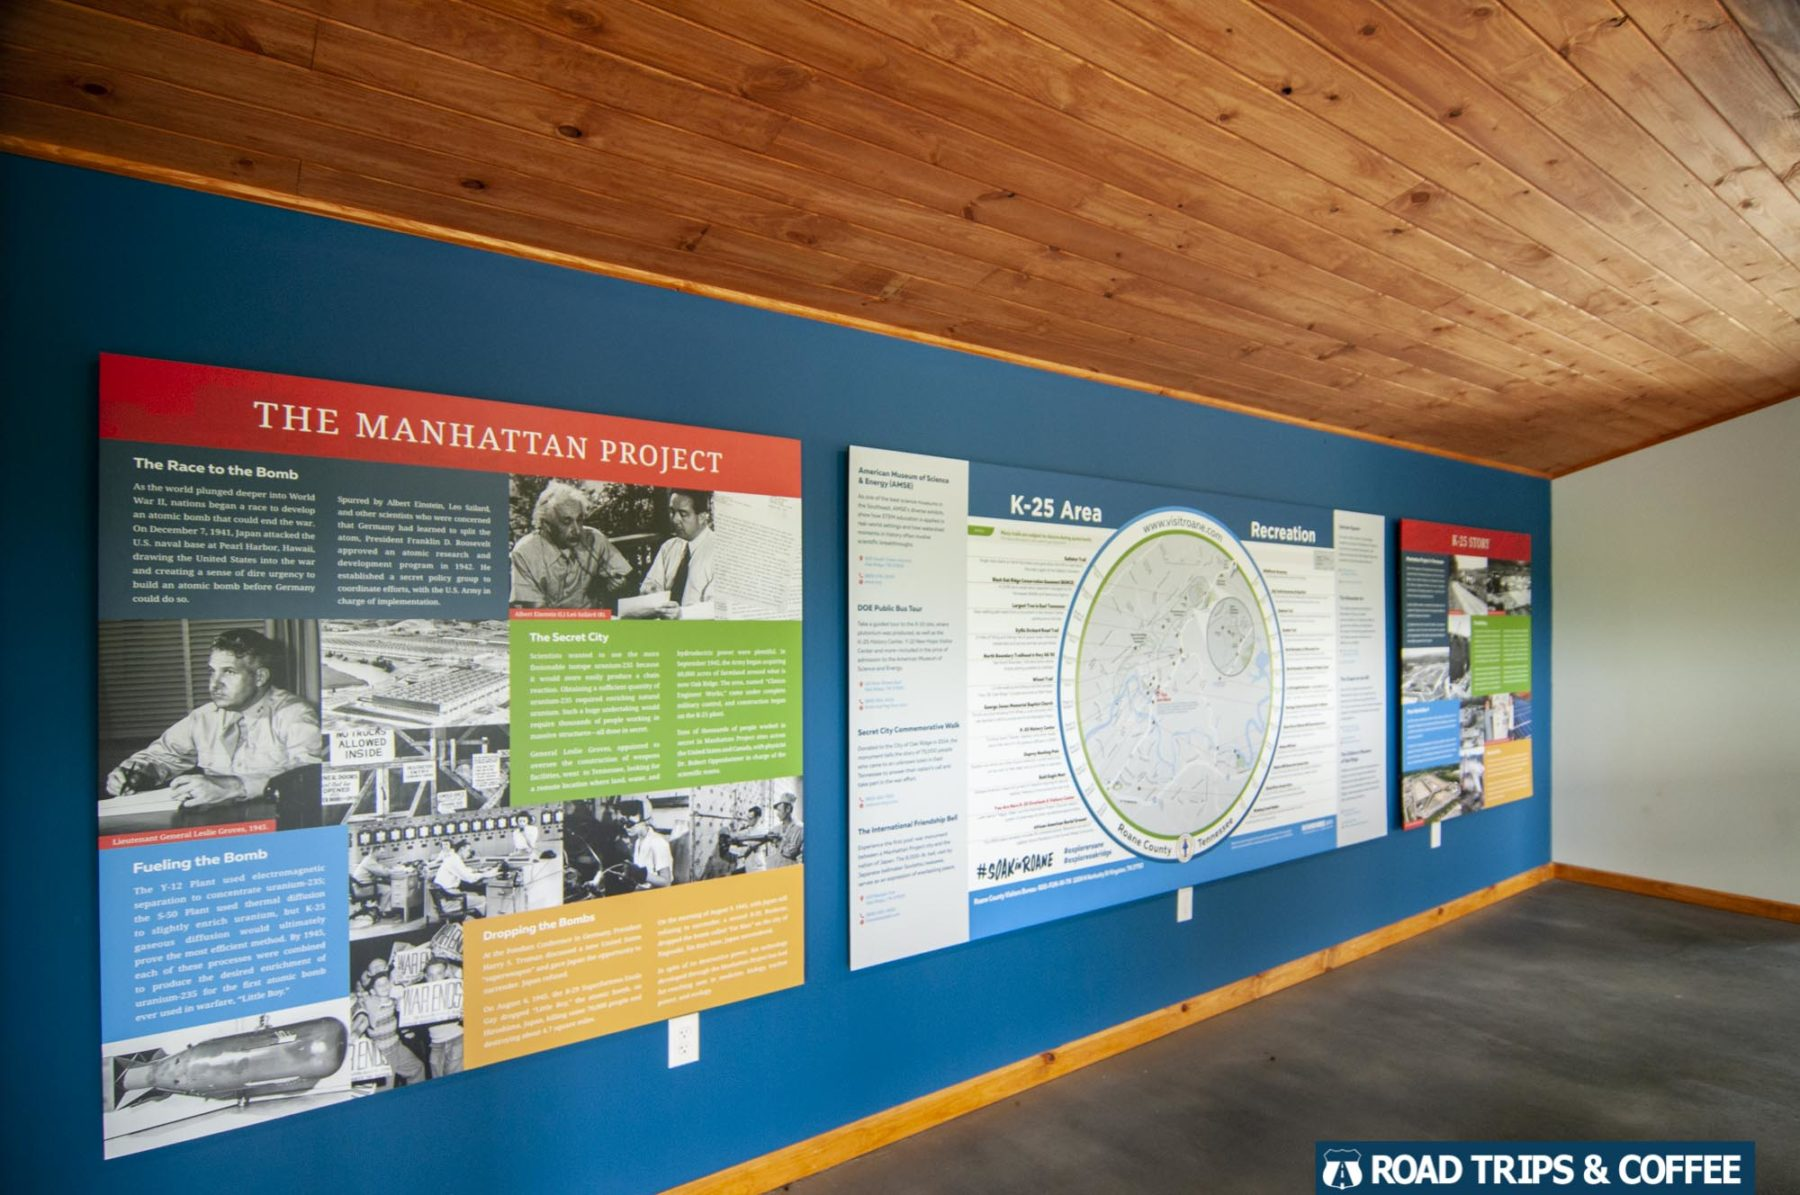 Information displays on the walls inside the K-25 Overlook Visitor Center in Oak Ridge, Tennessee